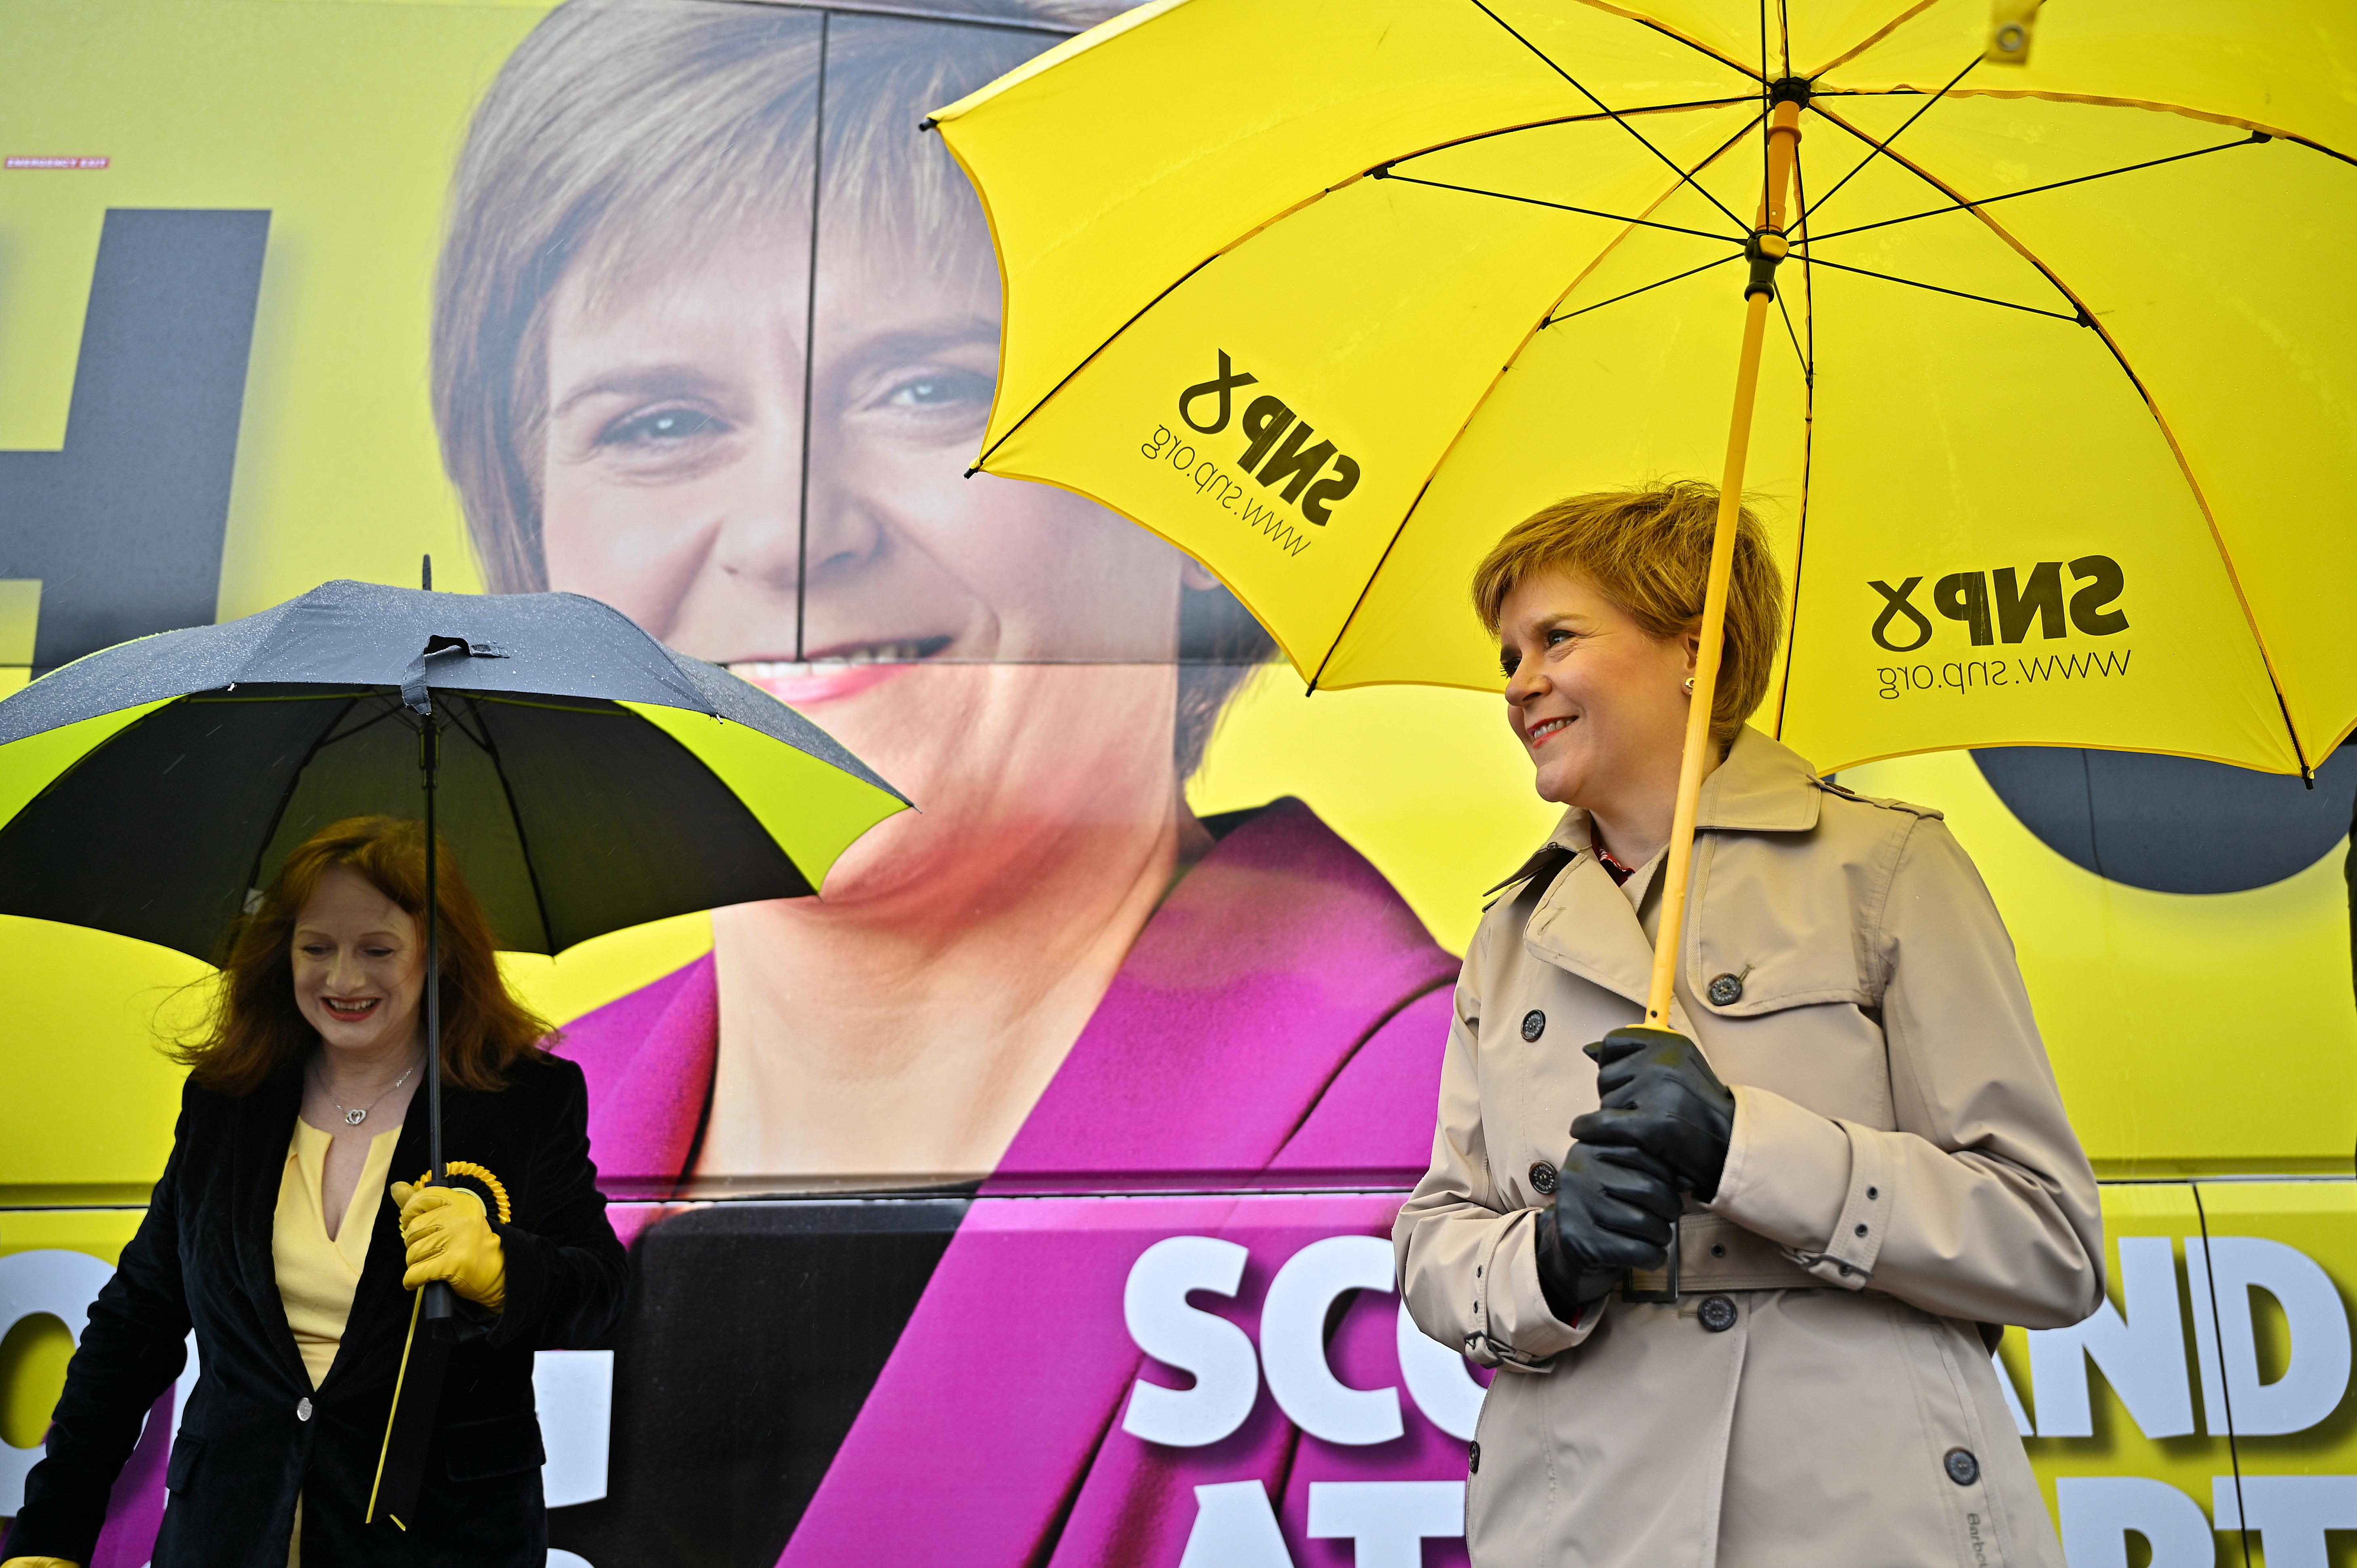 Scotland's First Minister Nicola Sturgeon and Joan McAlpine campaign in Midsteeple Quarter for the Scottish Parliament election, in Dumfries, Scotland, Britain May 3, 2021.  Jeff J Mitchell/Pool via REUTERS